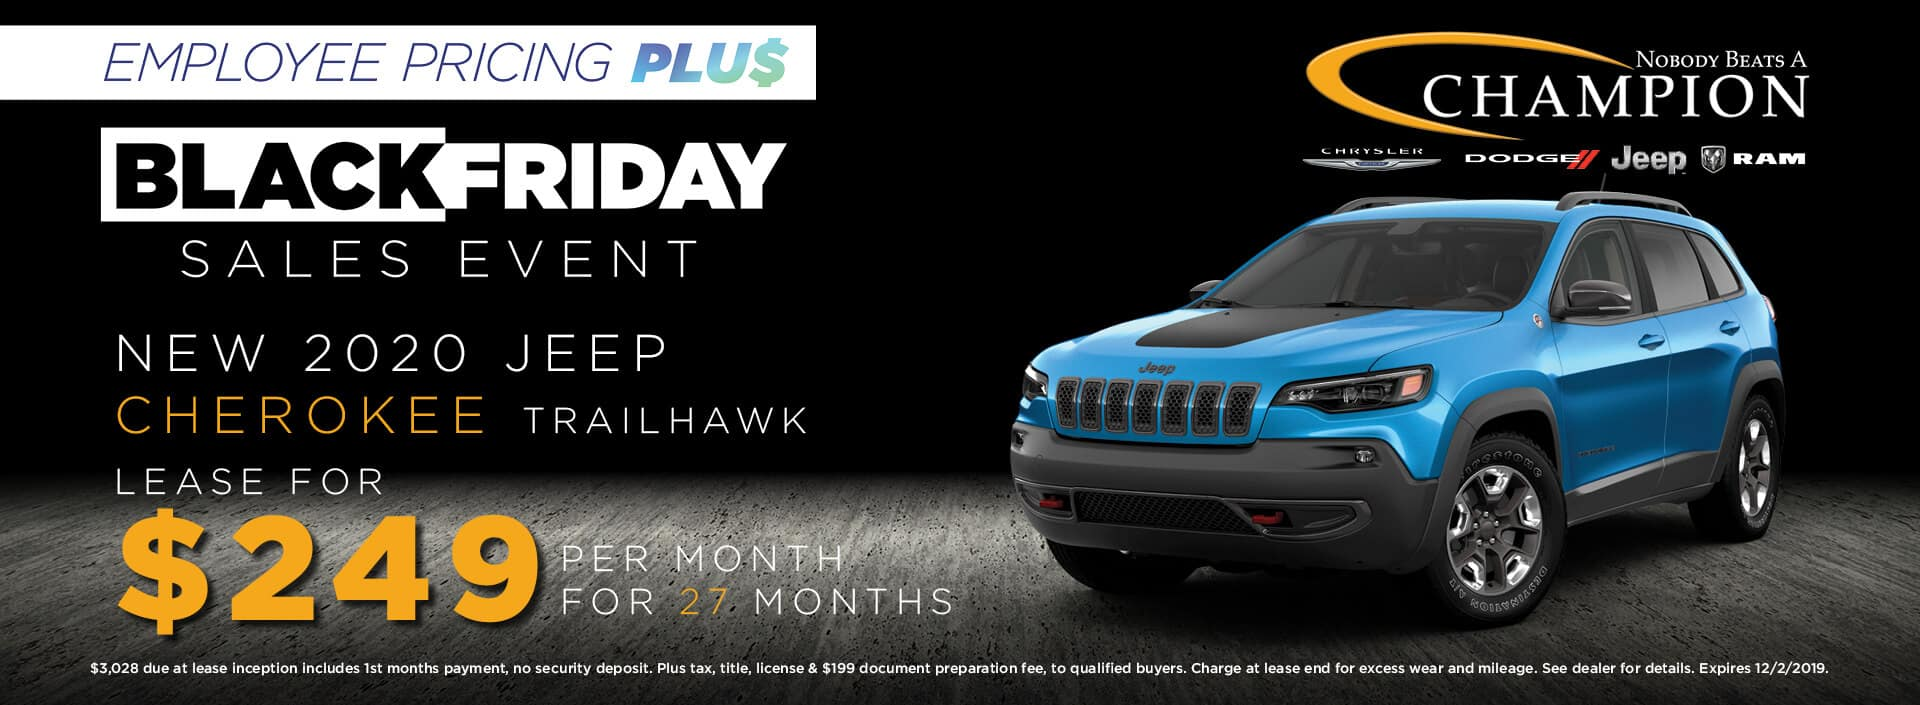 Lease a 2020 Jeep Cherokee Trailhawk for $249/mo. for 27 mos.